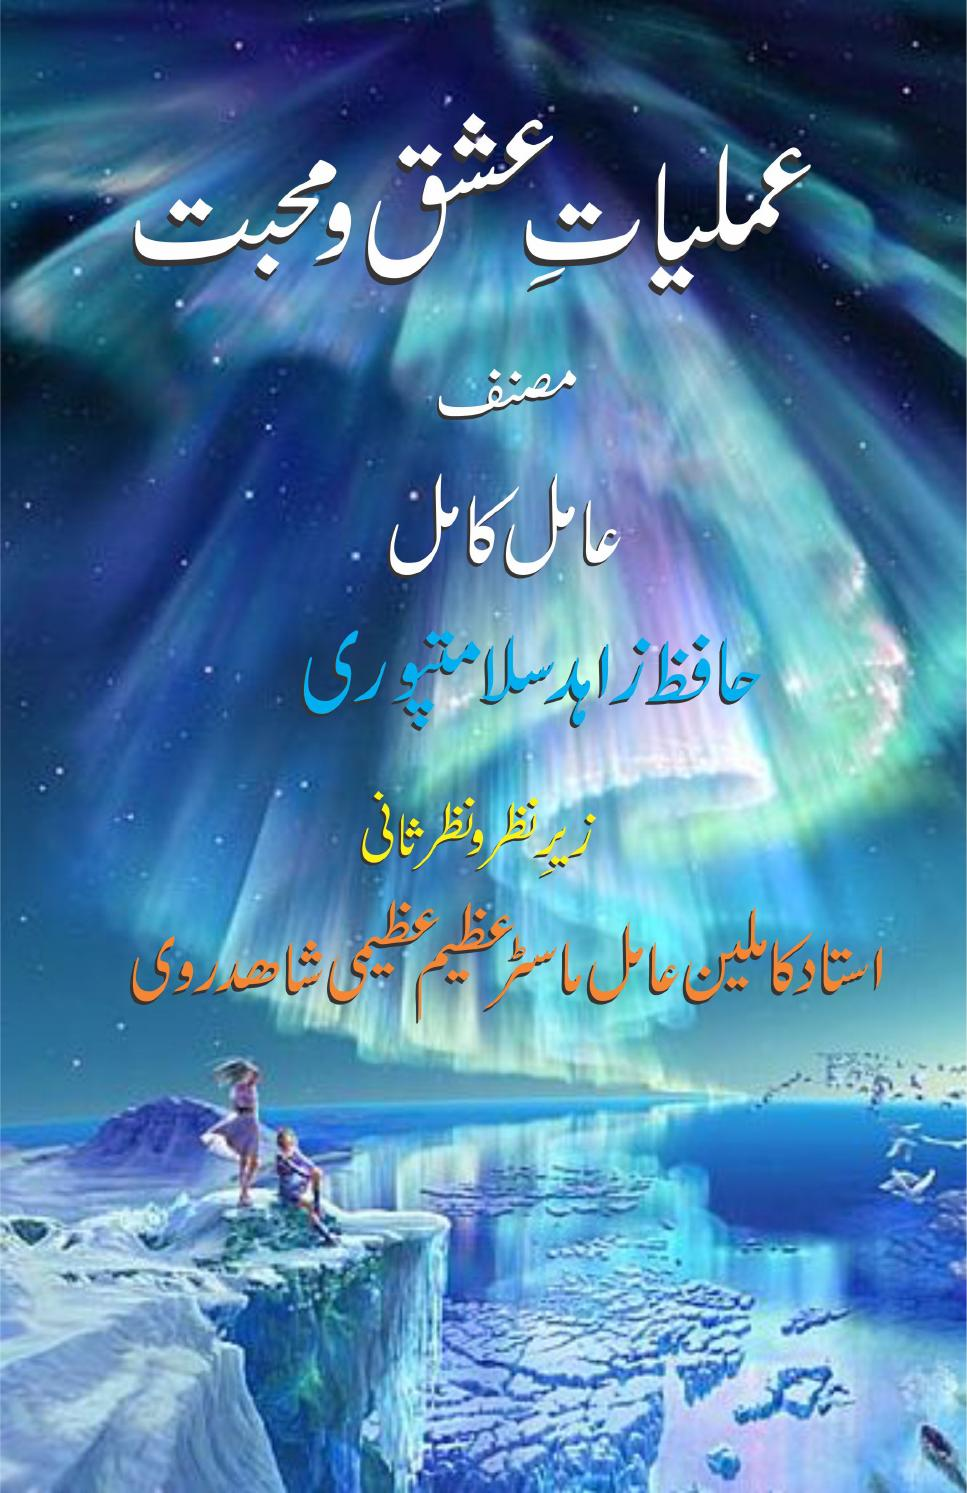 Amliyat book Free download